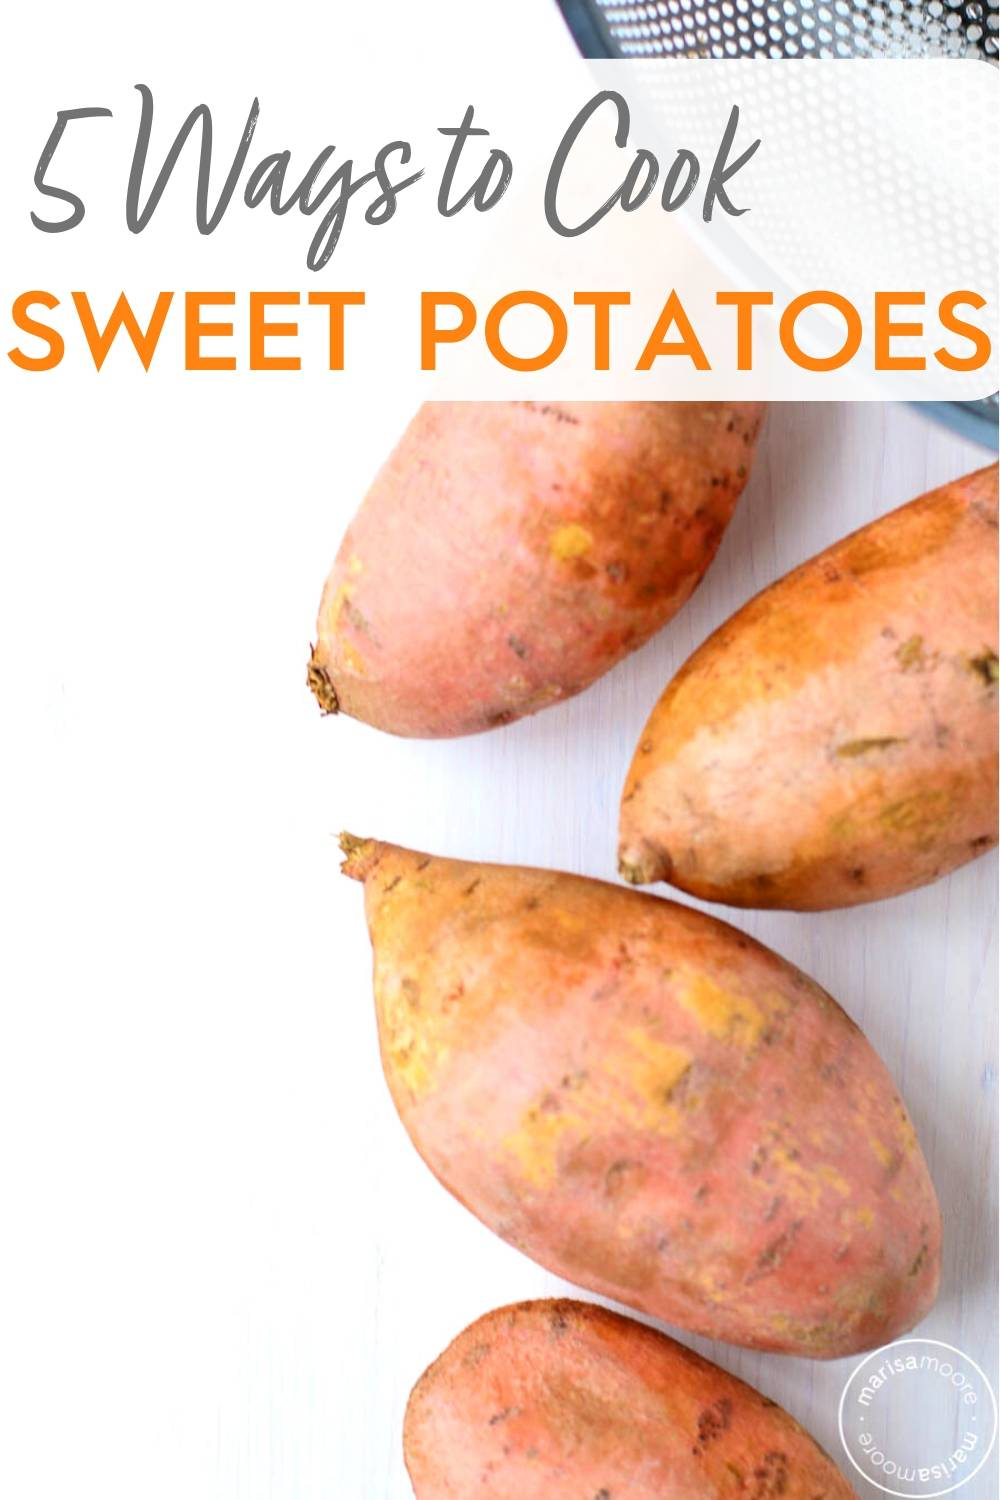 whole sweet potatoes on white background